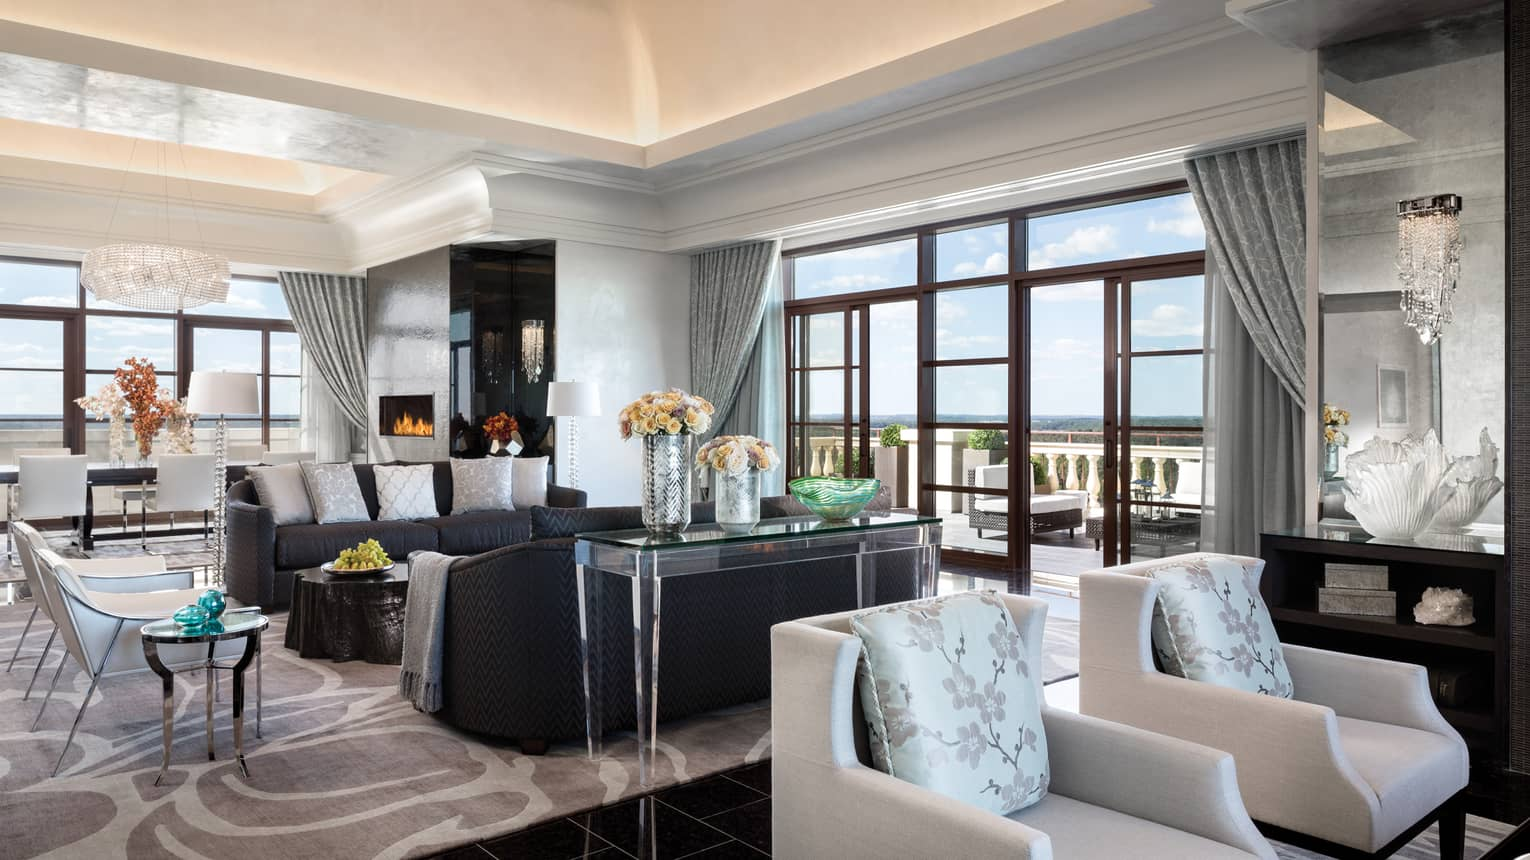 Royal Suite two seating areas in bright room under soaring ceilings, corner floor-to-ceiling windows